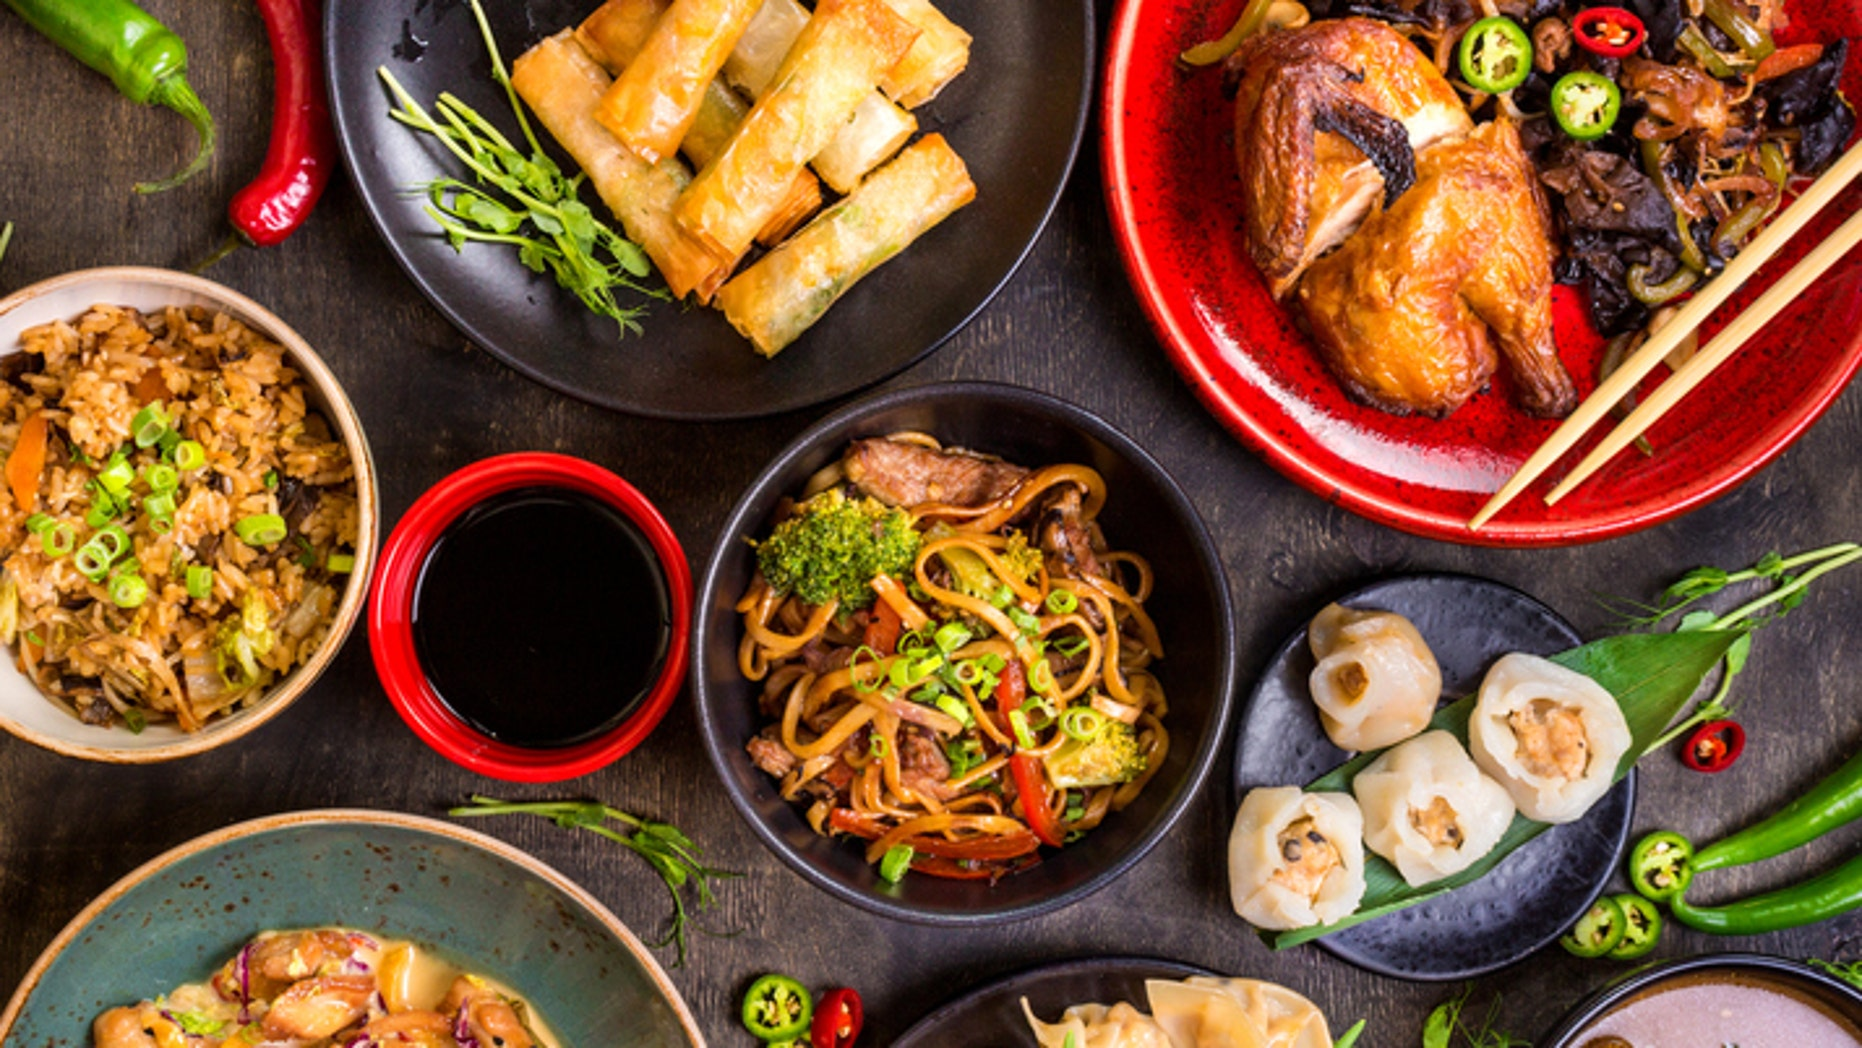 There's a story behind the Chinese food at P.F. Chang's.